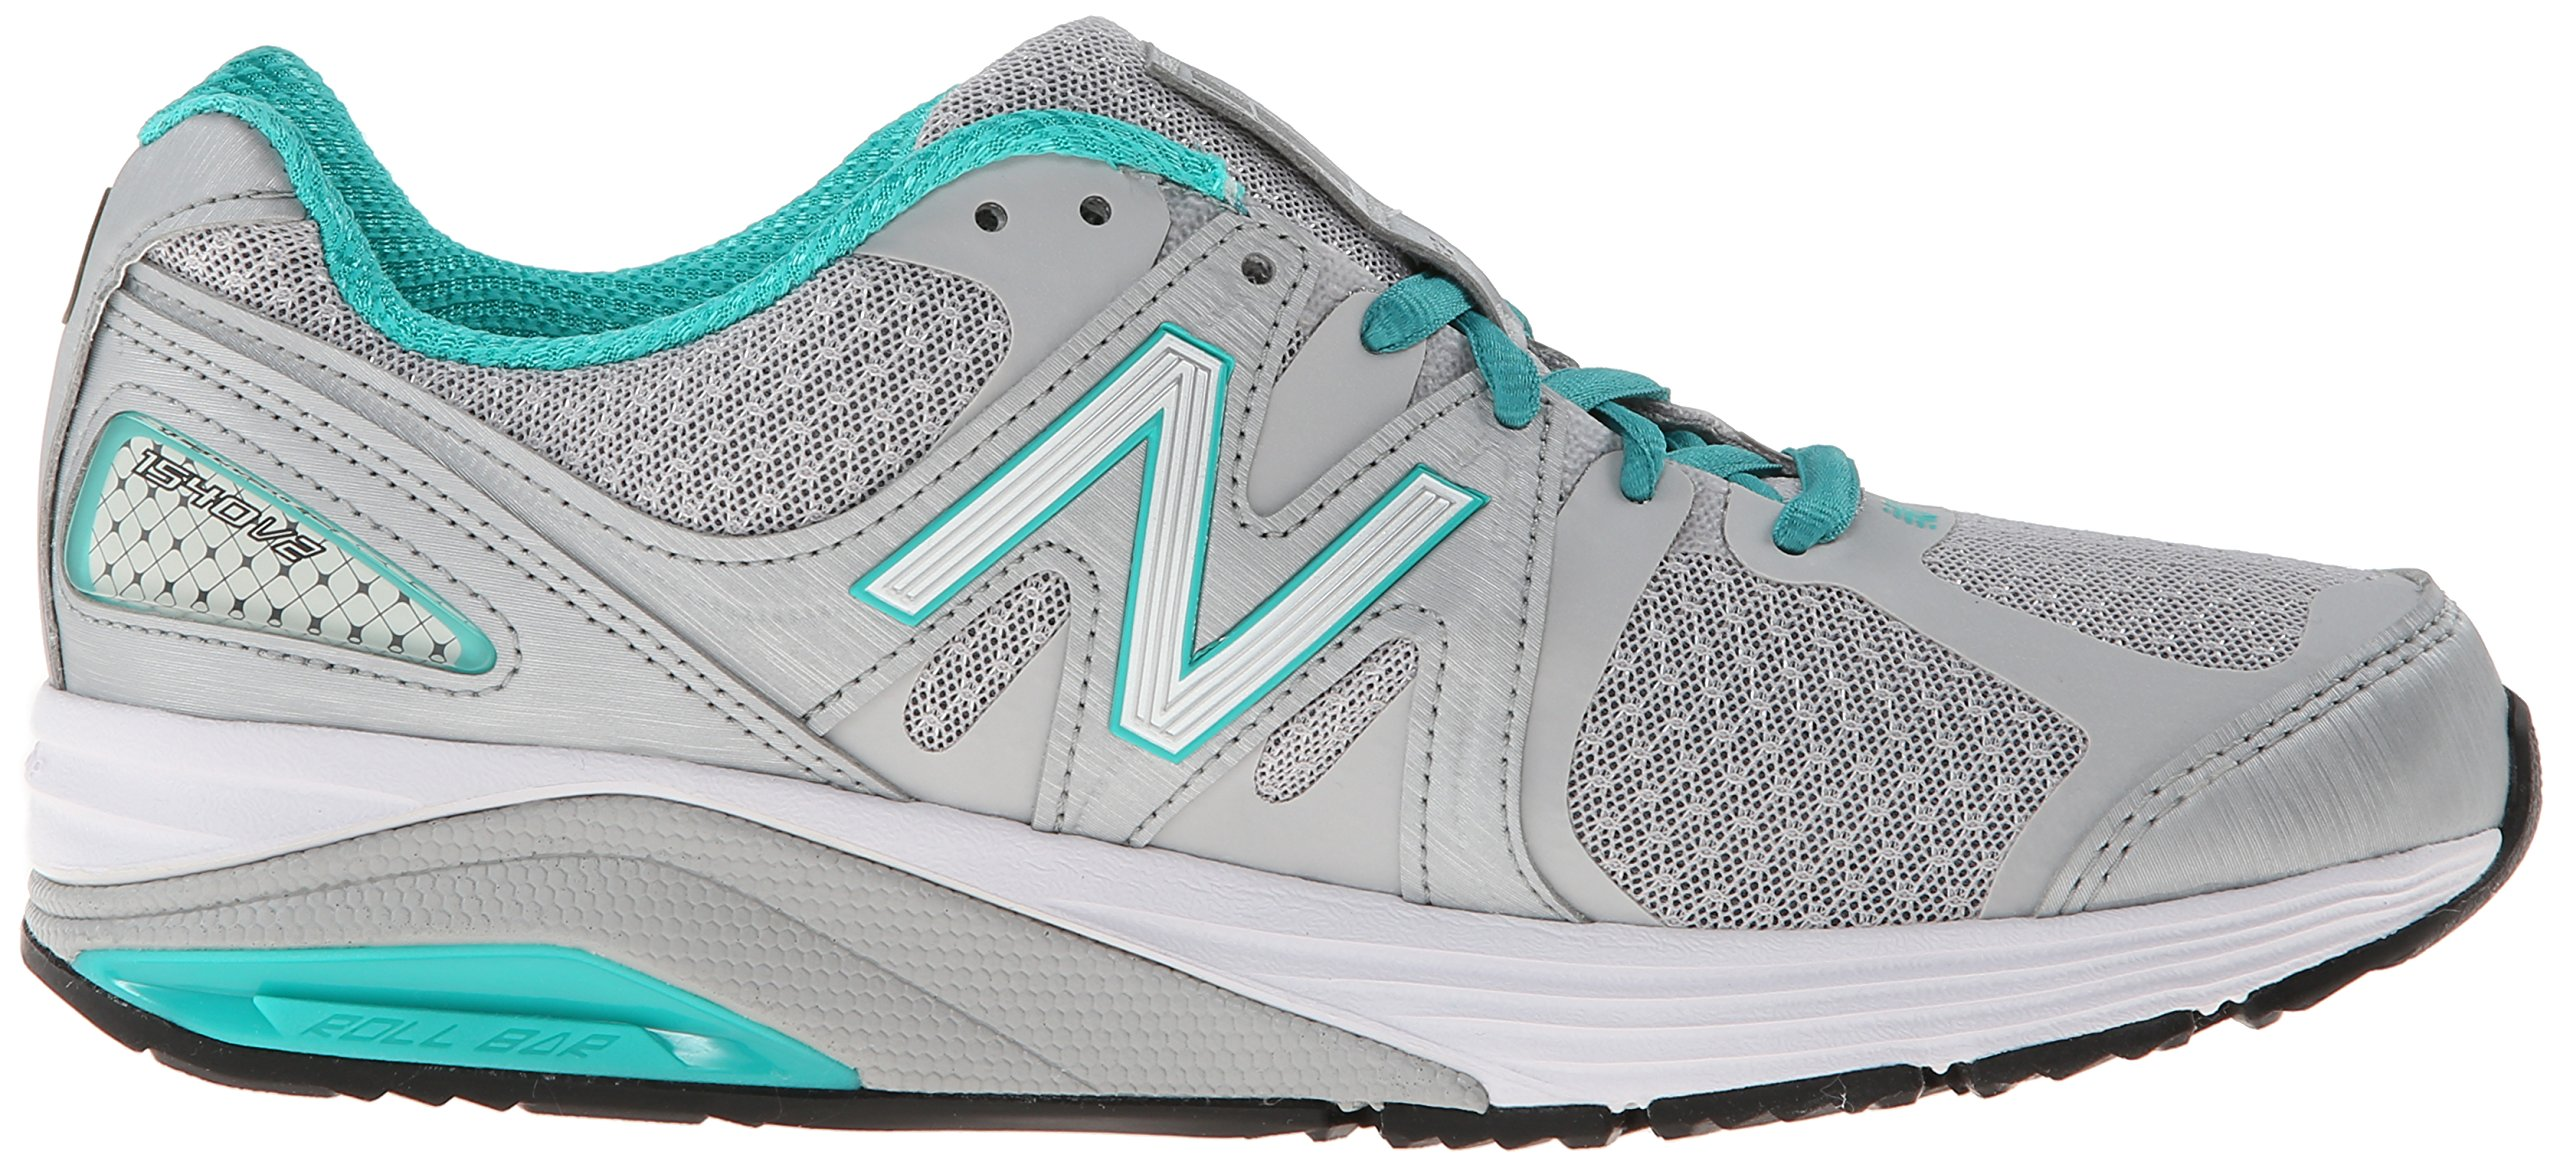 New Balance Women's W1540V2 Running Shoe Running Shoe,Silver/Grey,7 D US by New Balance (Image #7)